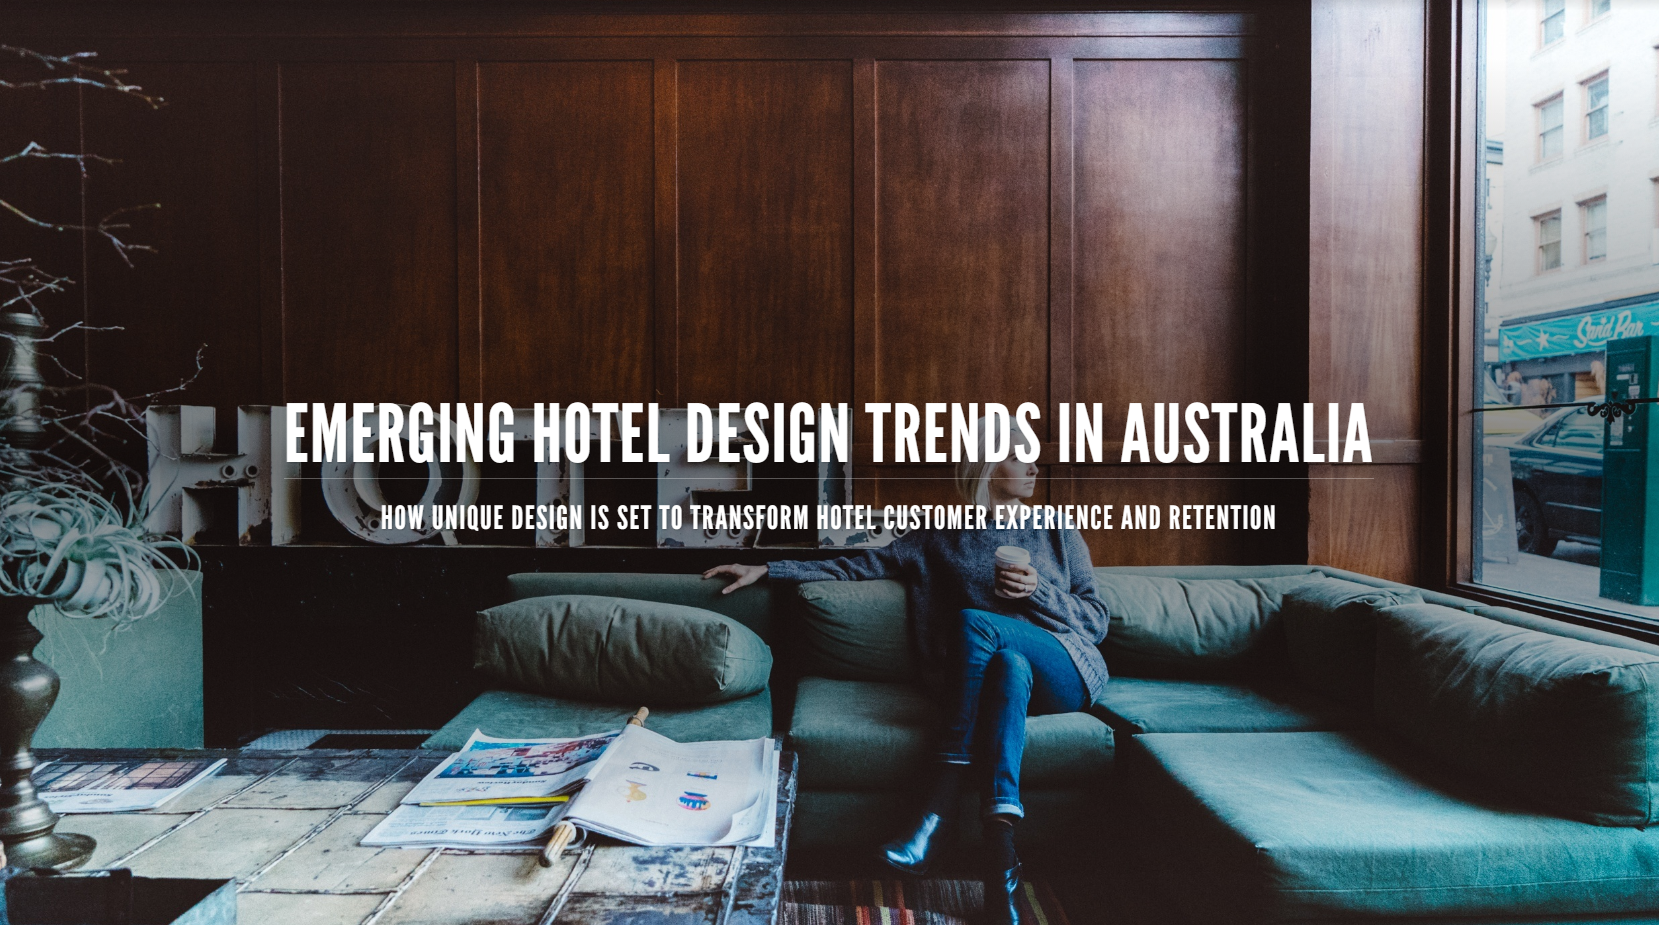 Emerging hotel design trends in Australia: How unique design is set to transform hotel customer experience and retention